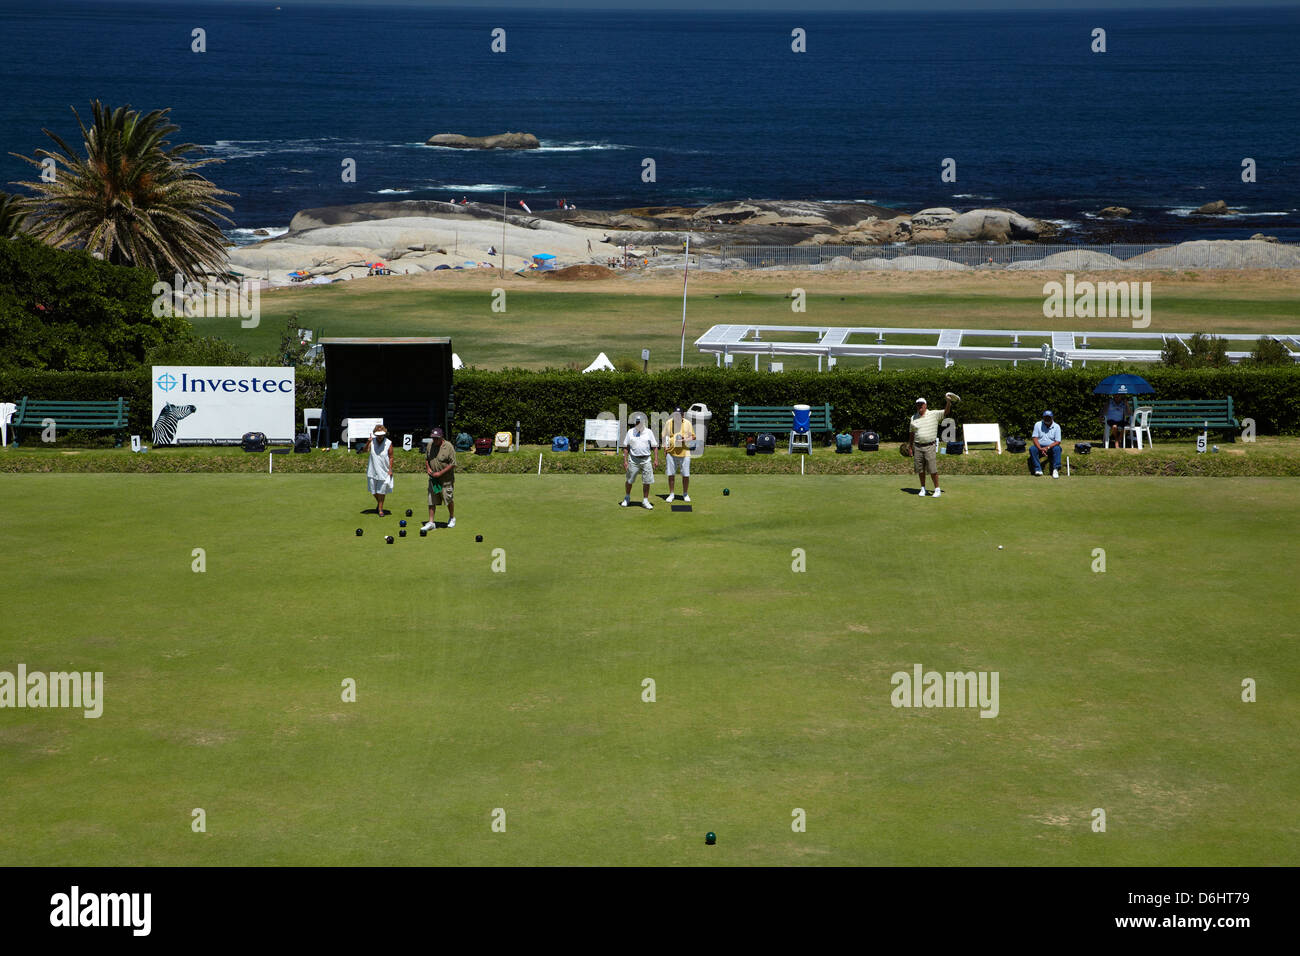 Lawn bowls, Clifton, Cape Town, South Africa - Stock Image